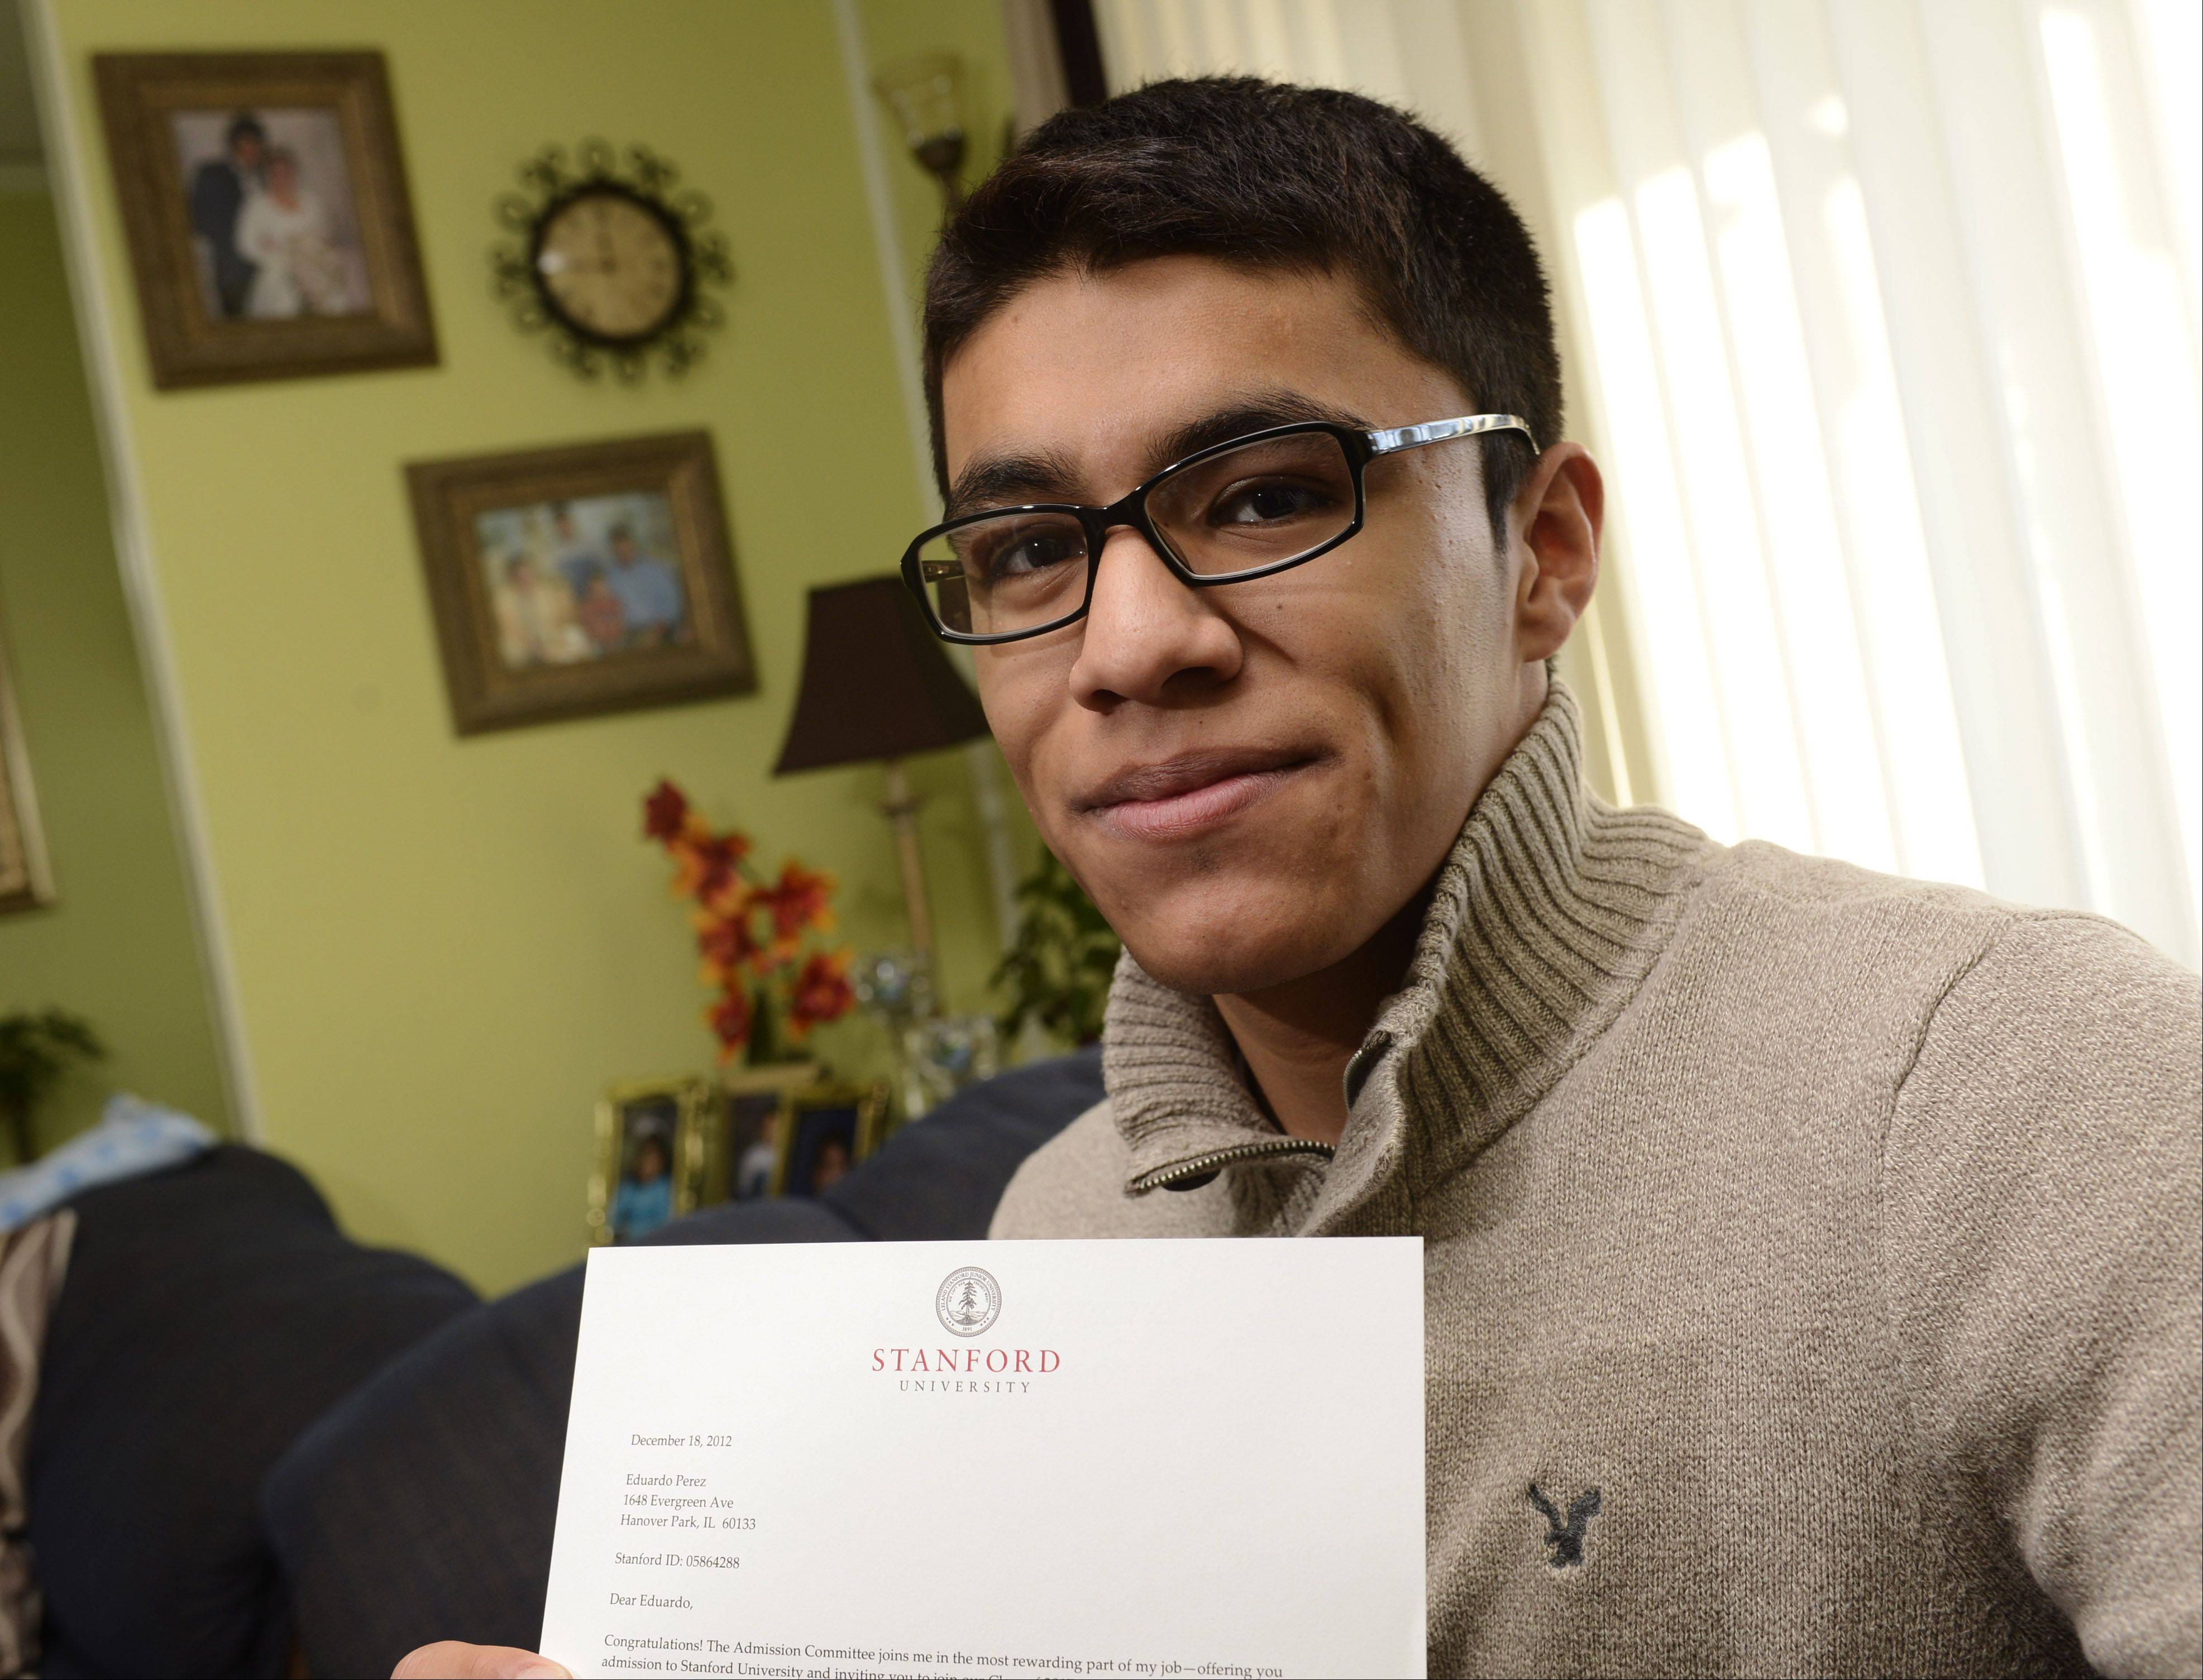 Eduardo Perez of Hanover Park, a senior at Elgin High School, has accepted a four-year scholarship to Stanford University. Here he's pictured with his acceptance letter. Eduardo is on the varsity track, swim and soccer teams.